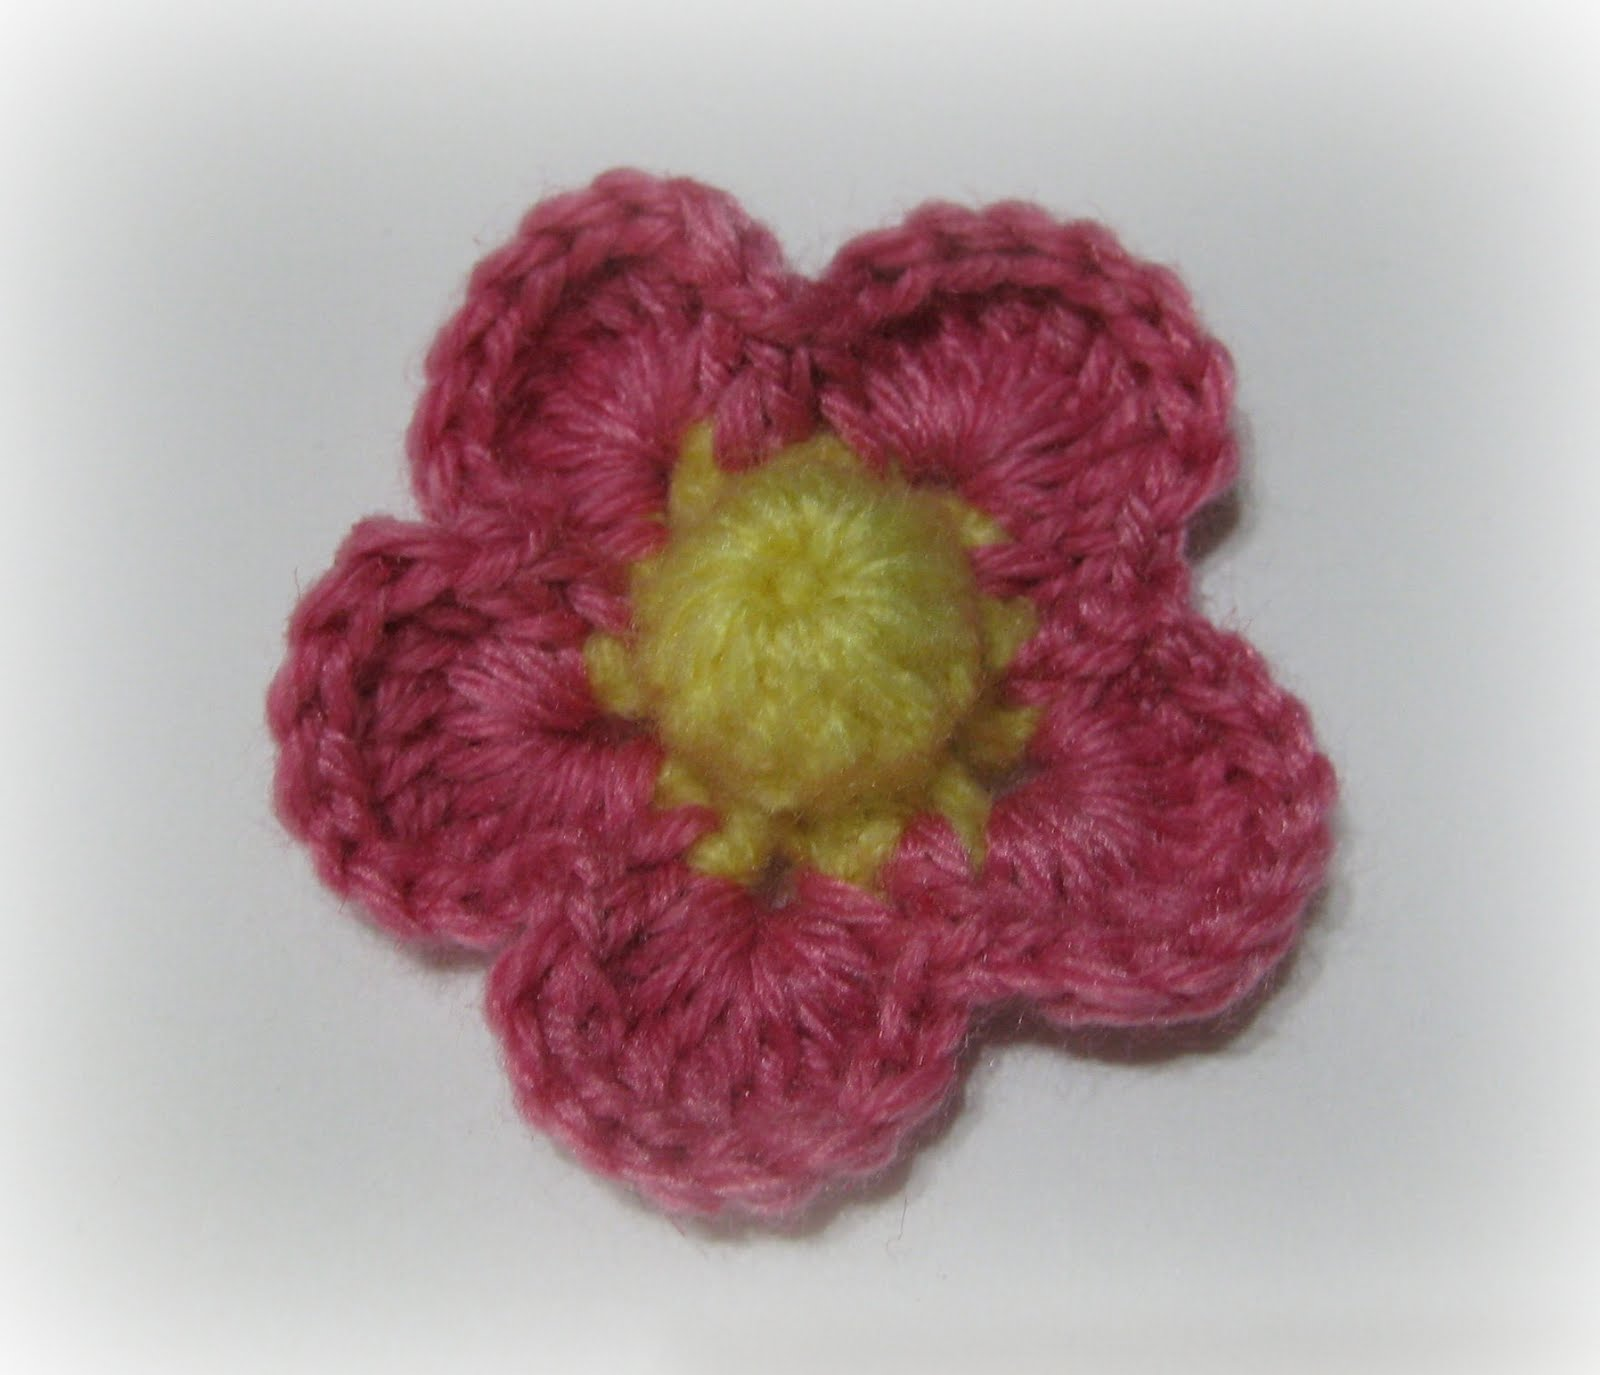 Crochet Flower - Crochet Pansy | How to Crochet